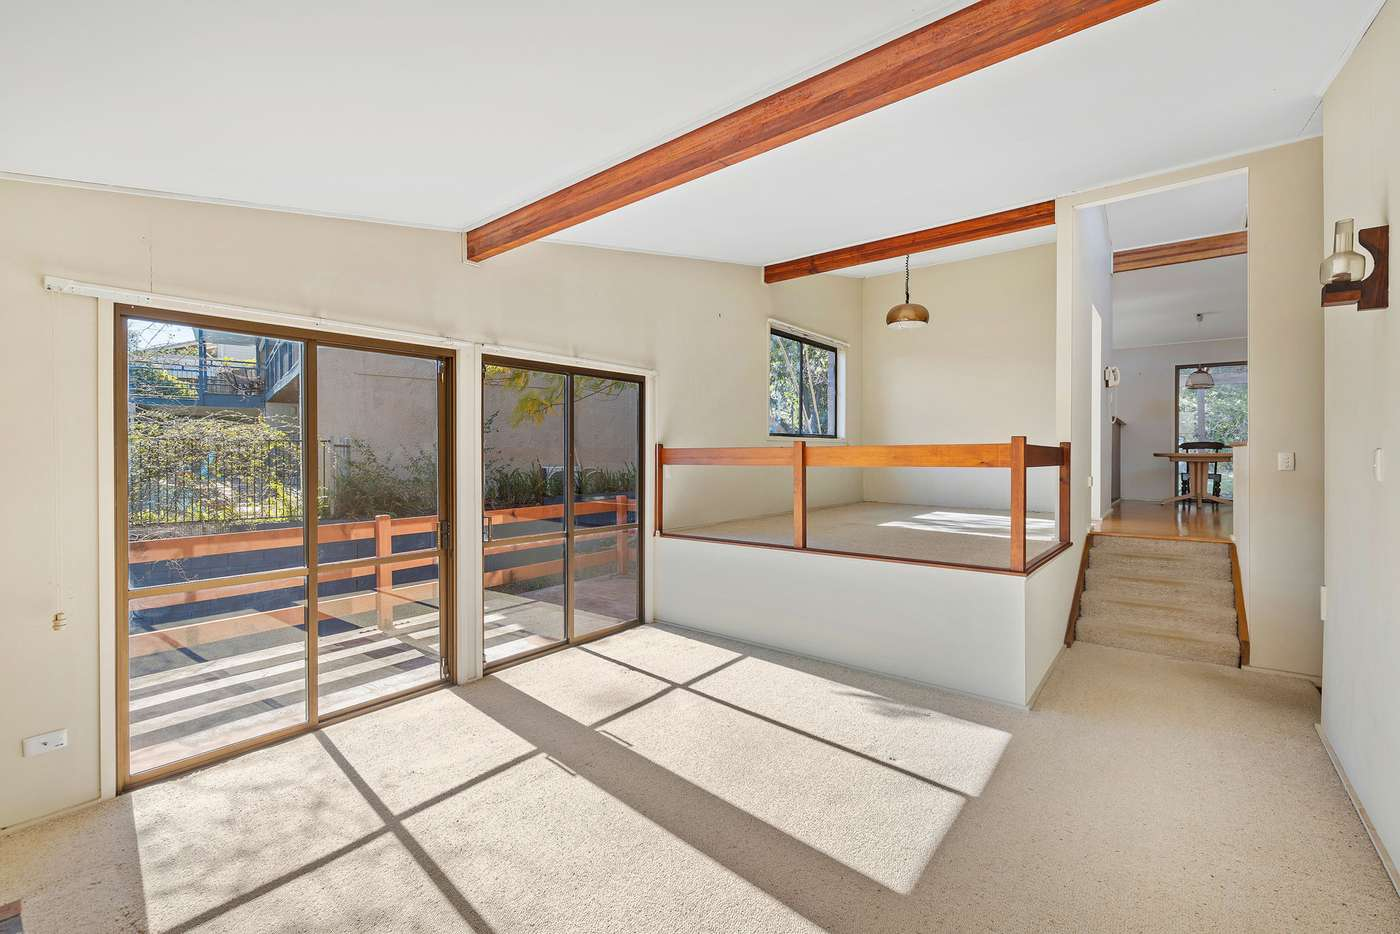 Fifth view of Homely house listing, 112 Mountain Street, Mount Gravatt QLD 4122